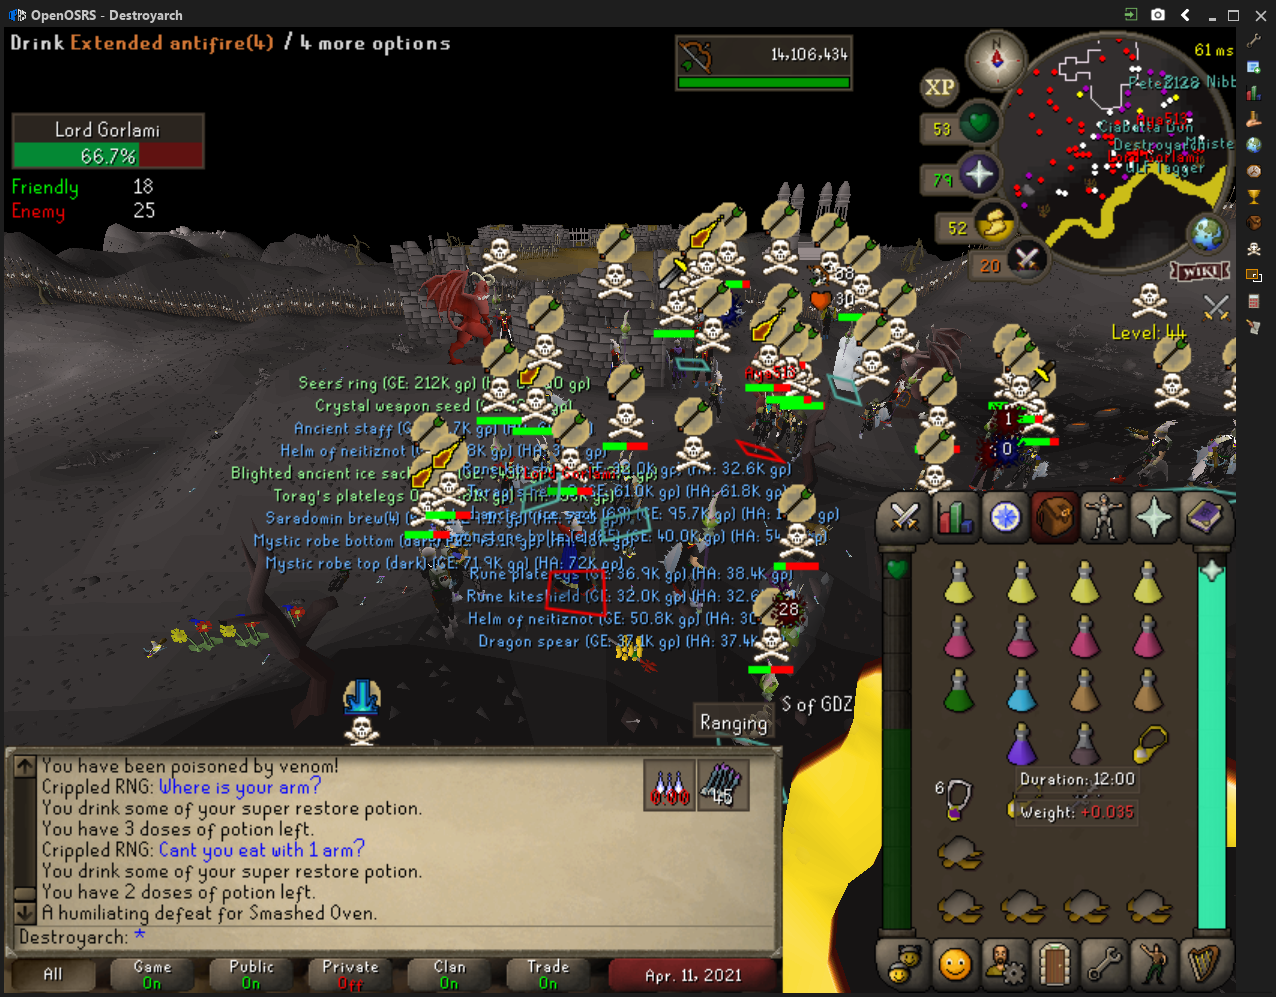 Kill_Smashed_Oven_2021-04-11_16-20-54.png